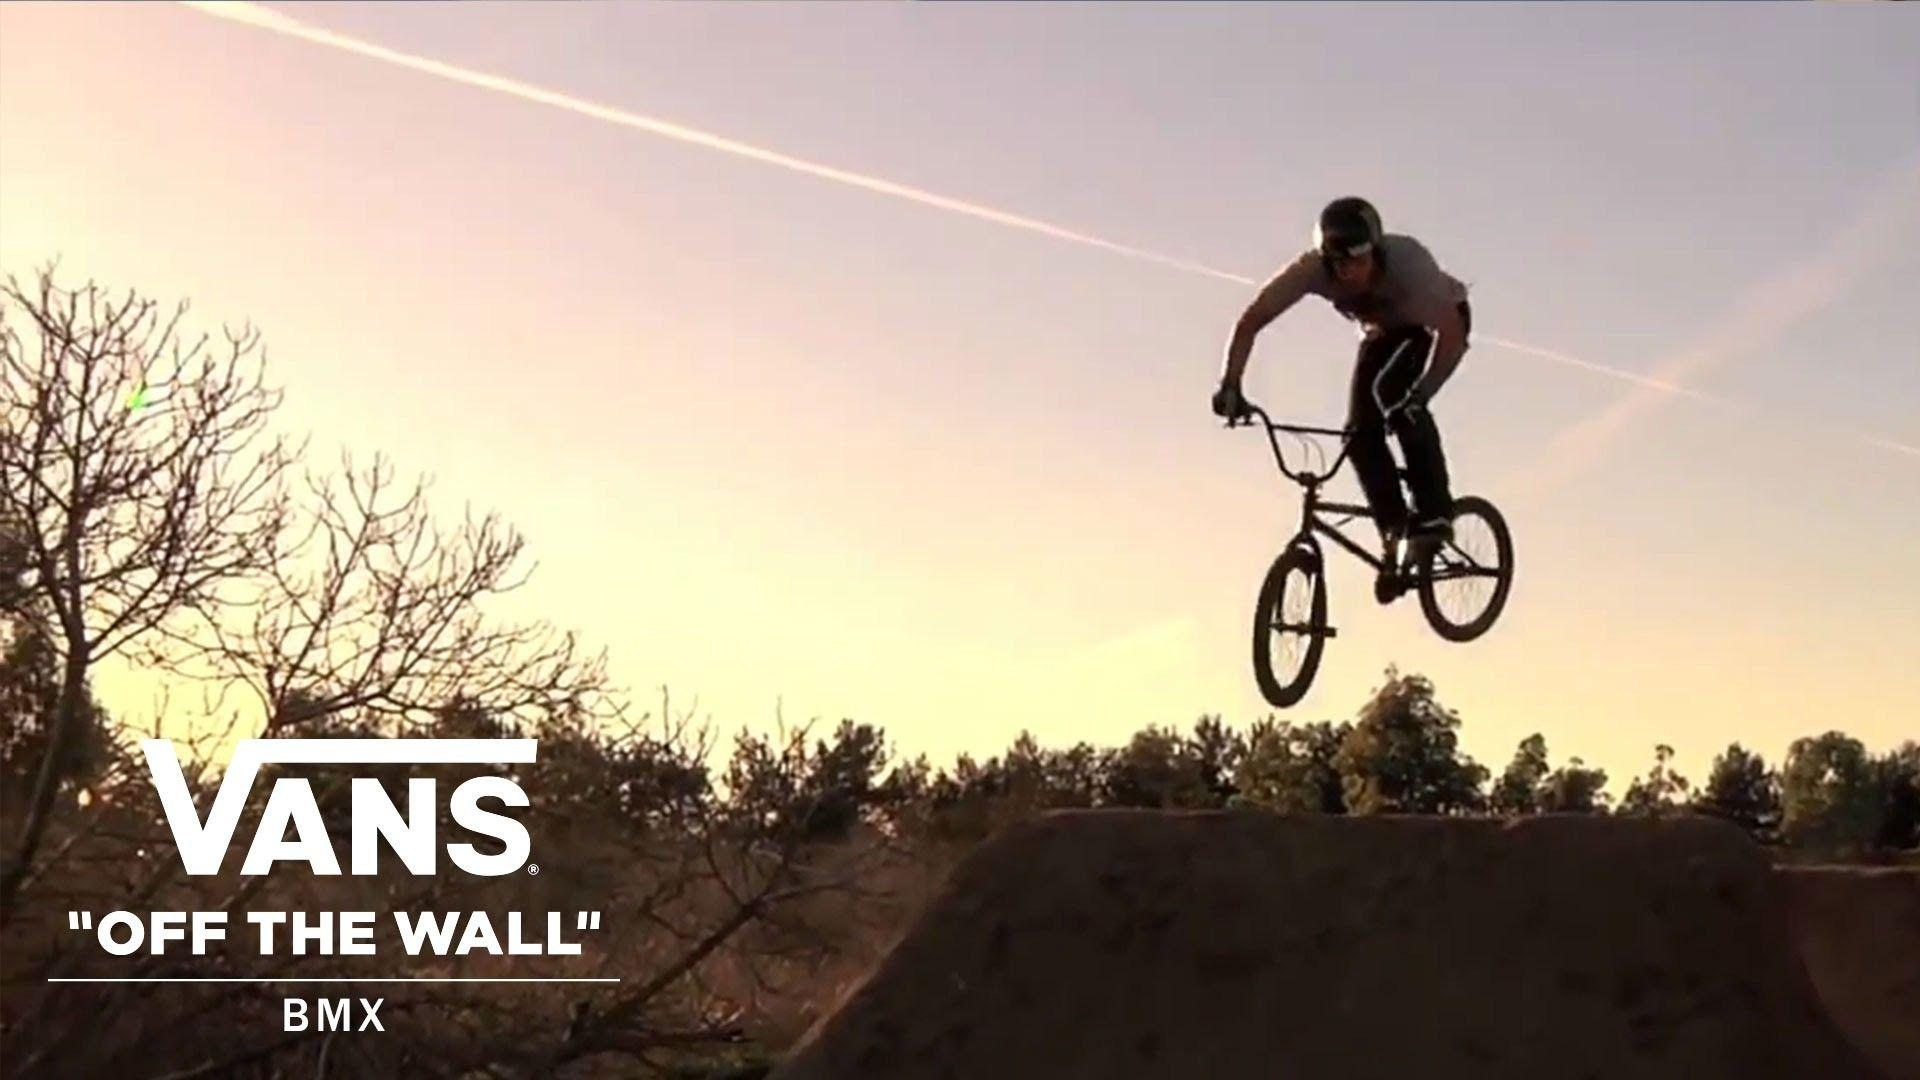 Vans Off The Wall Wallpapers - Wallpaper Cave